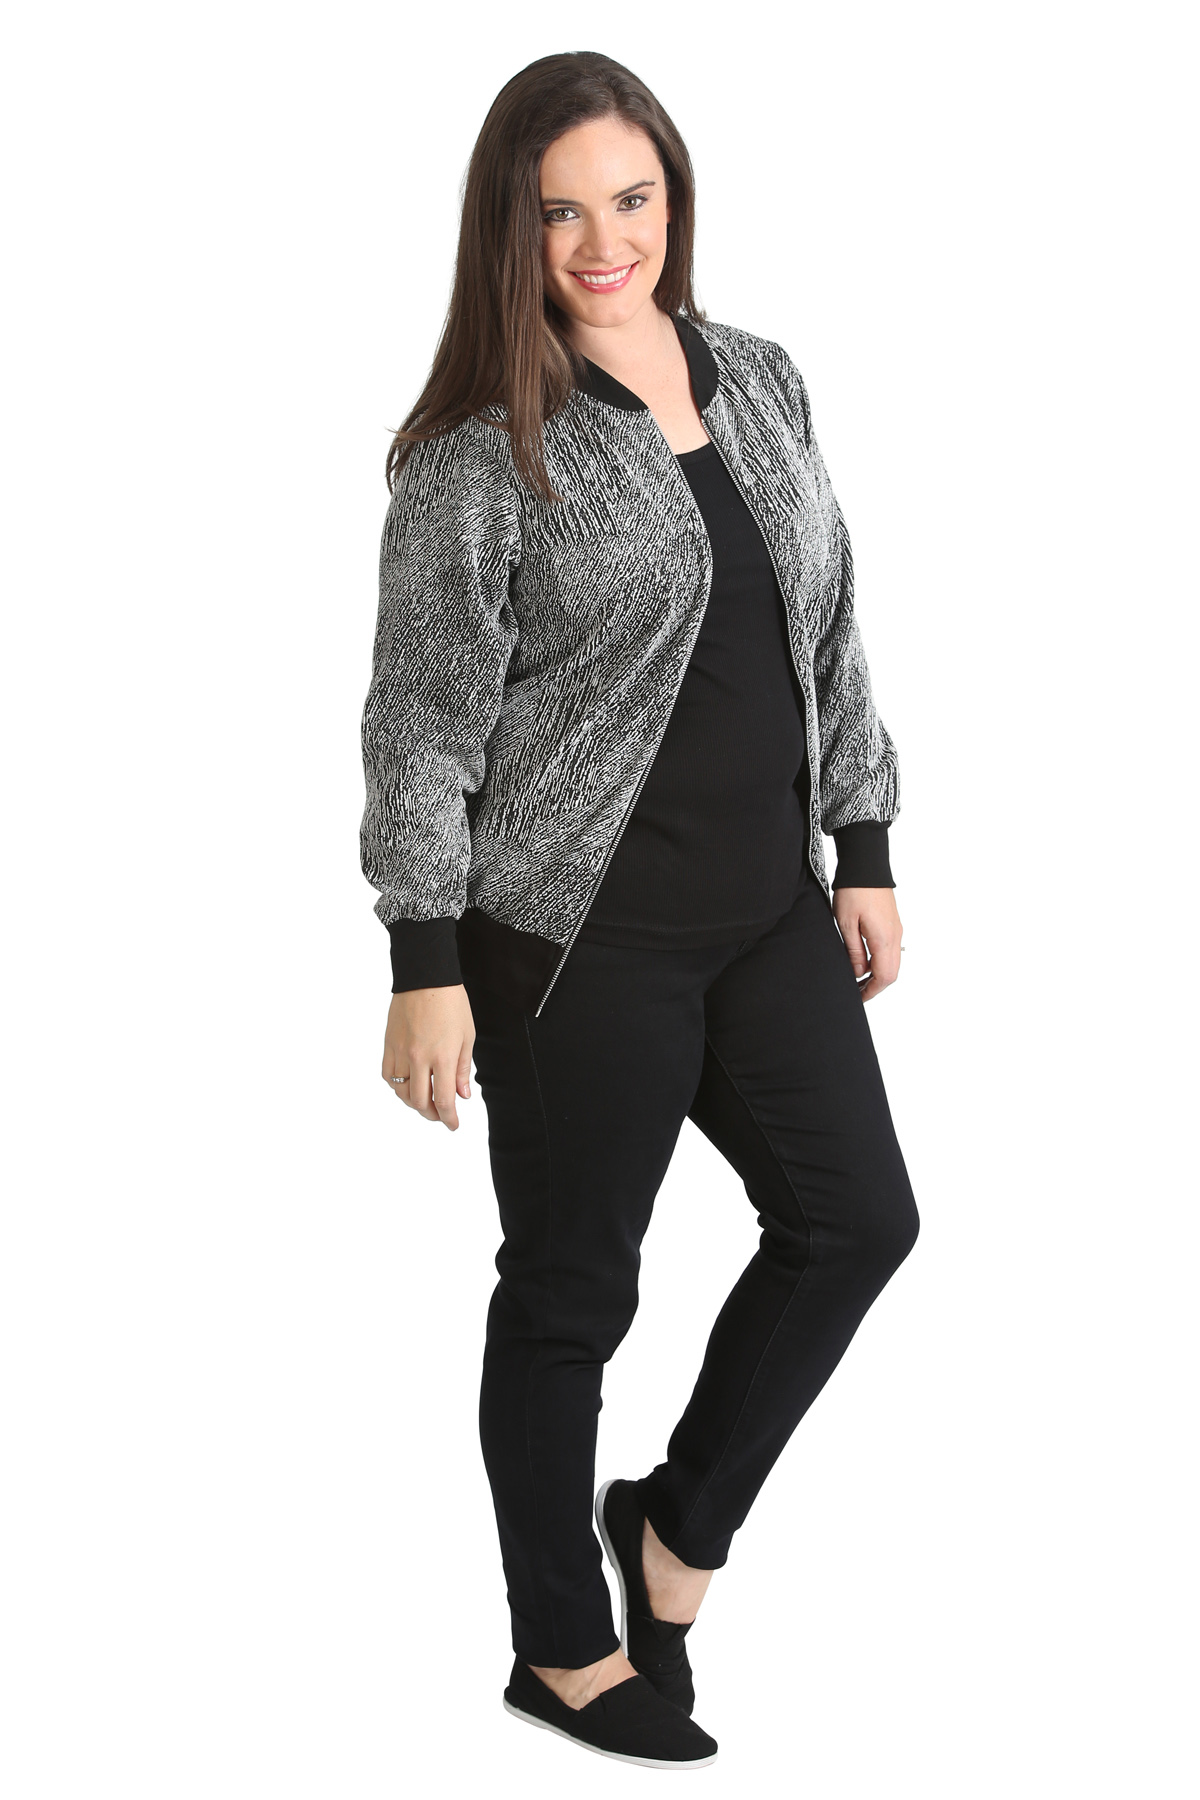 Shop colorful, casual and comfortable plus size apparel for at a great value, in sizes 12W to 44W or S to 8X. Buy any plus size top, tee, shirt, tank top, blouse or tunic in soft knits or woven fabrics. Plus size pants and jeans come in knit, denim, corduroy and khaki and all with stretch for extra comfort.